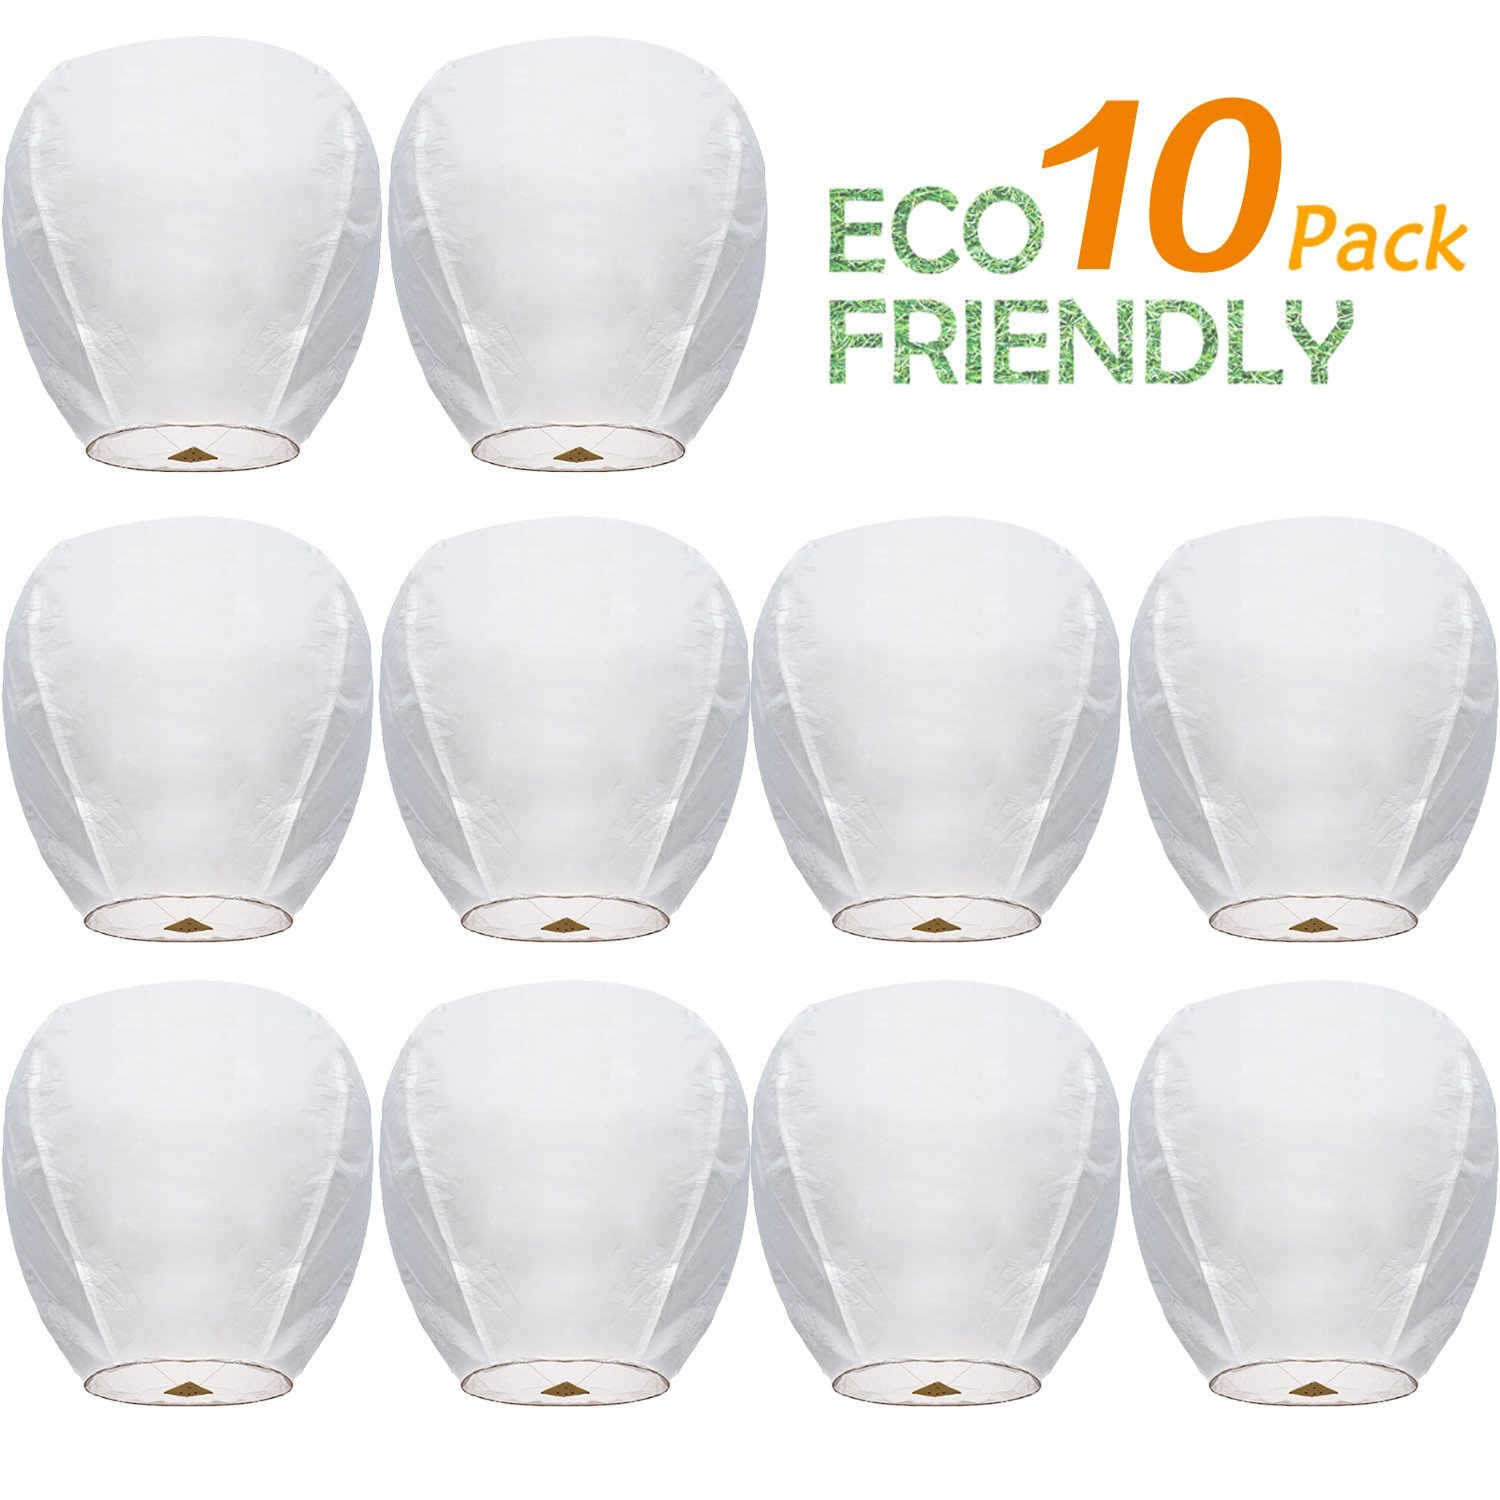 Chinese Paper Flying Sky Lanterns Wire-Free Flying 100% Biodegradable- for Wedding, Christmas, Memorial, Party Wish (10 Pack)